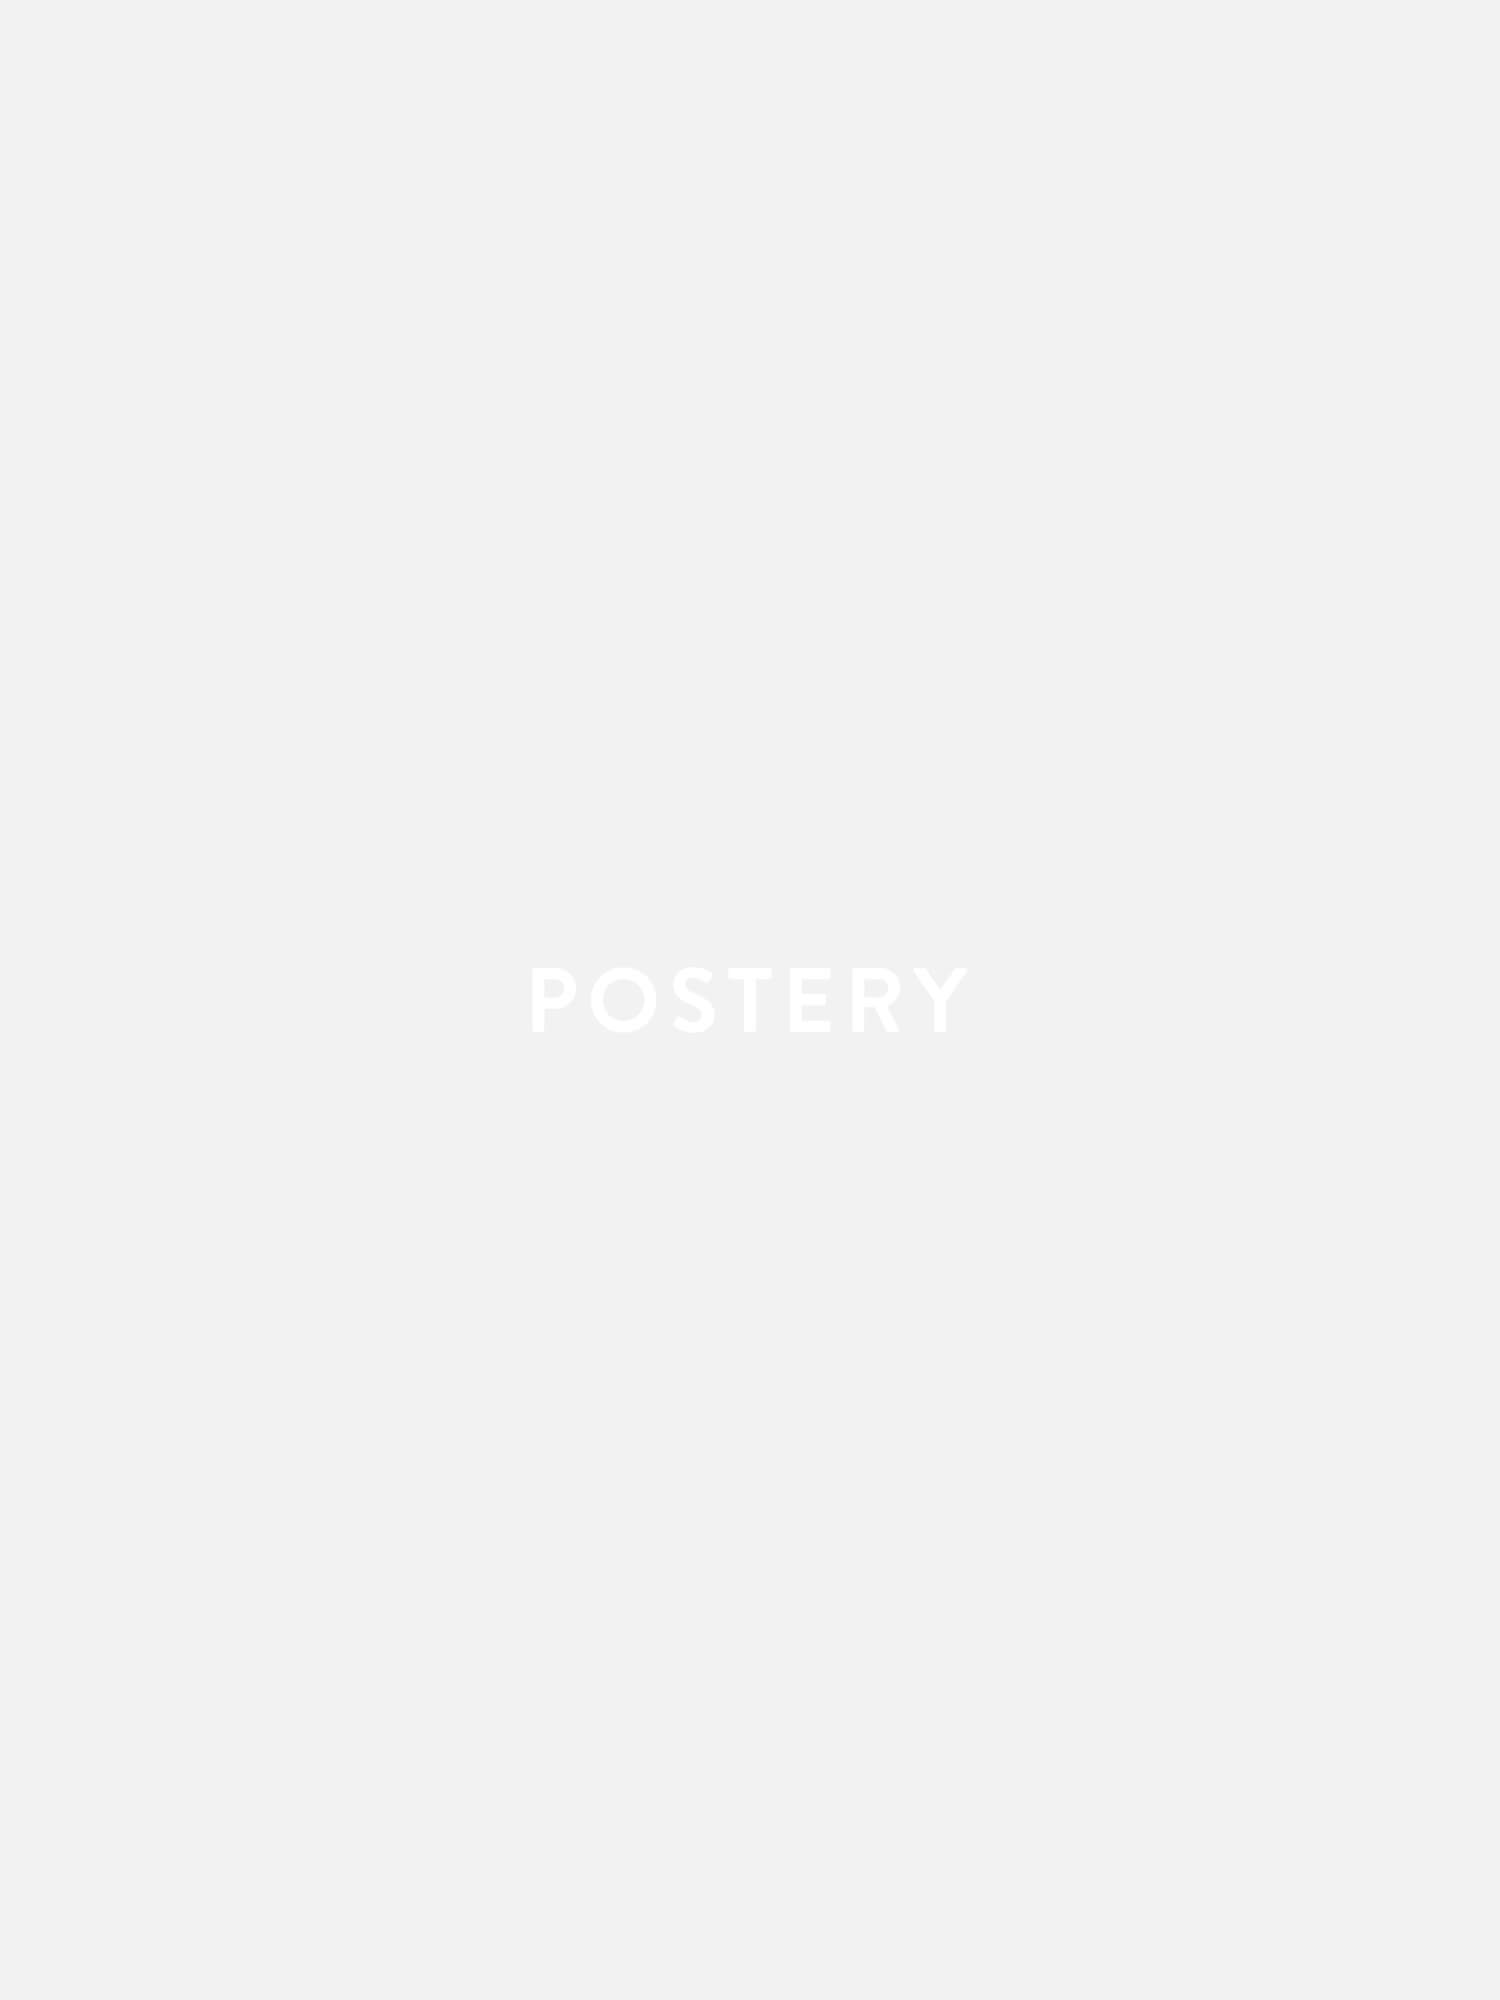 Peachy Poster